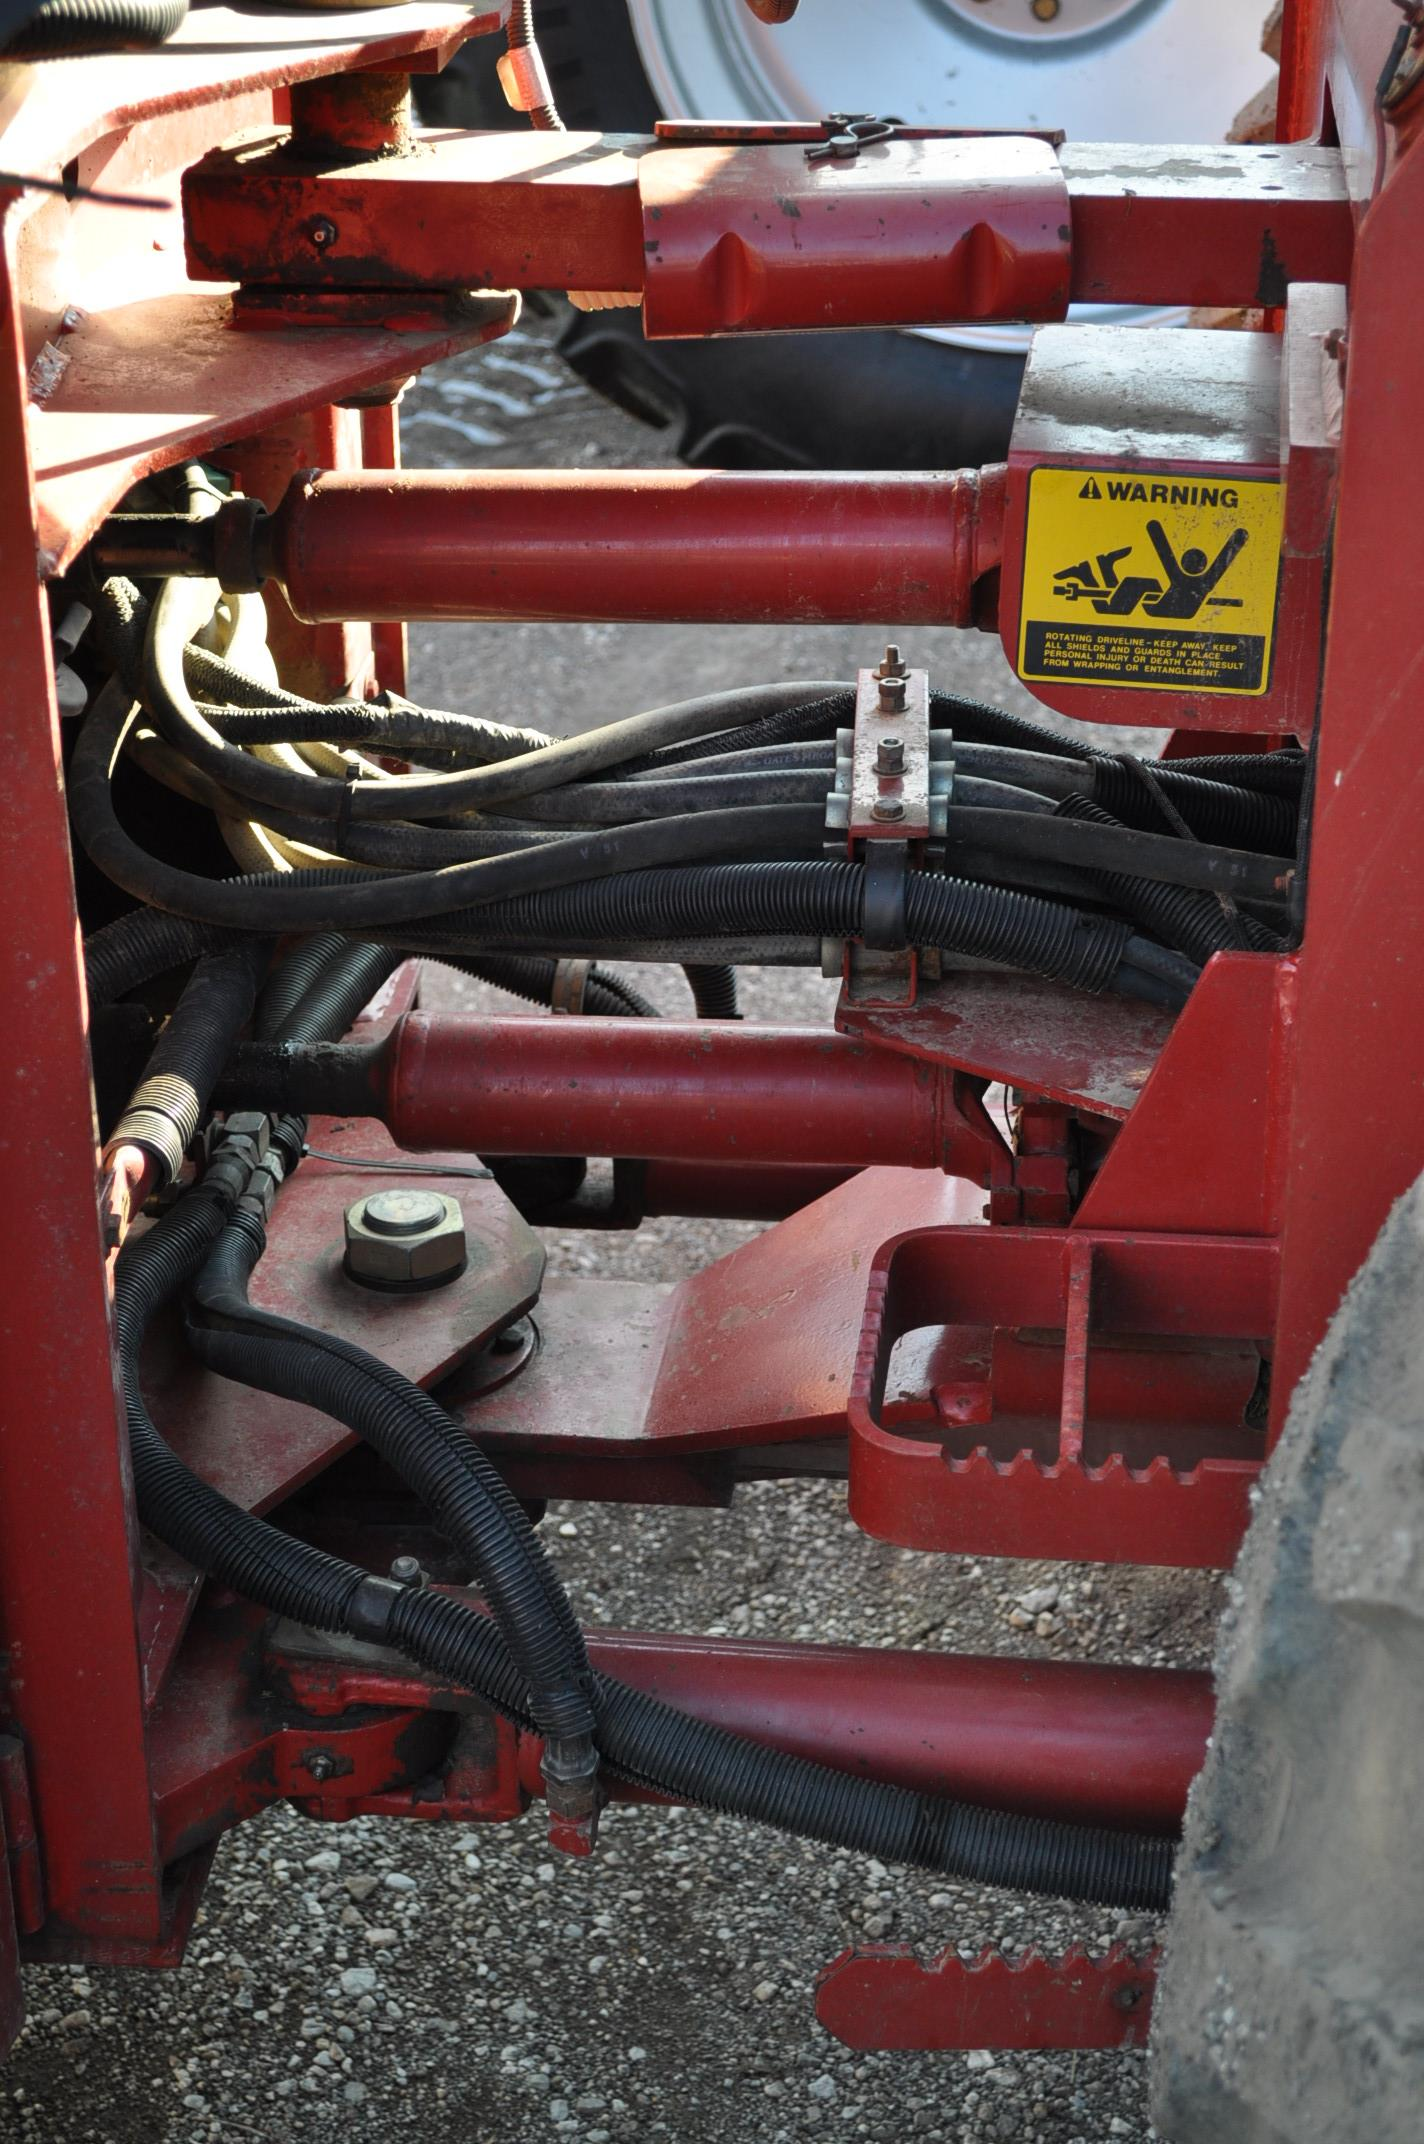 Case IH 9230 4WD tractor, 18.4-38 duals, power shift, skip shift, 4 hyd remotes, 3pt, quick hitch, - Image 10 of 23